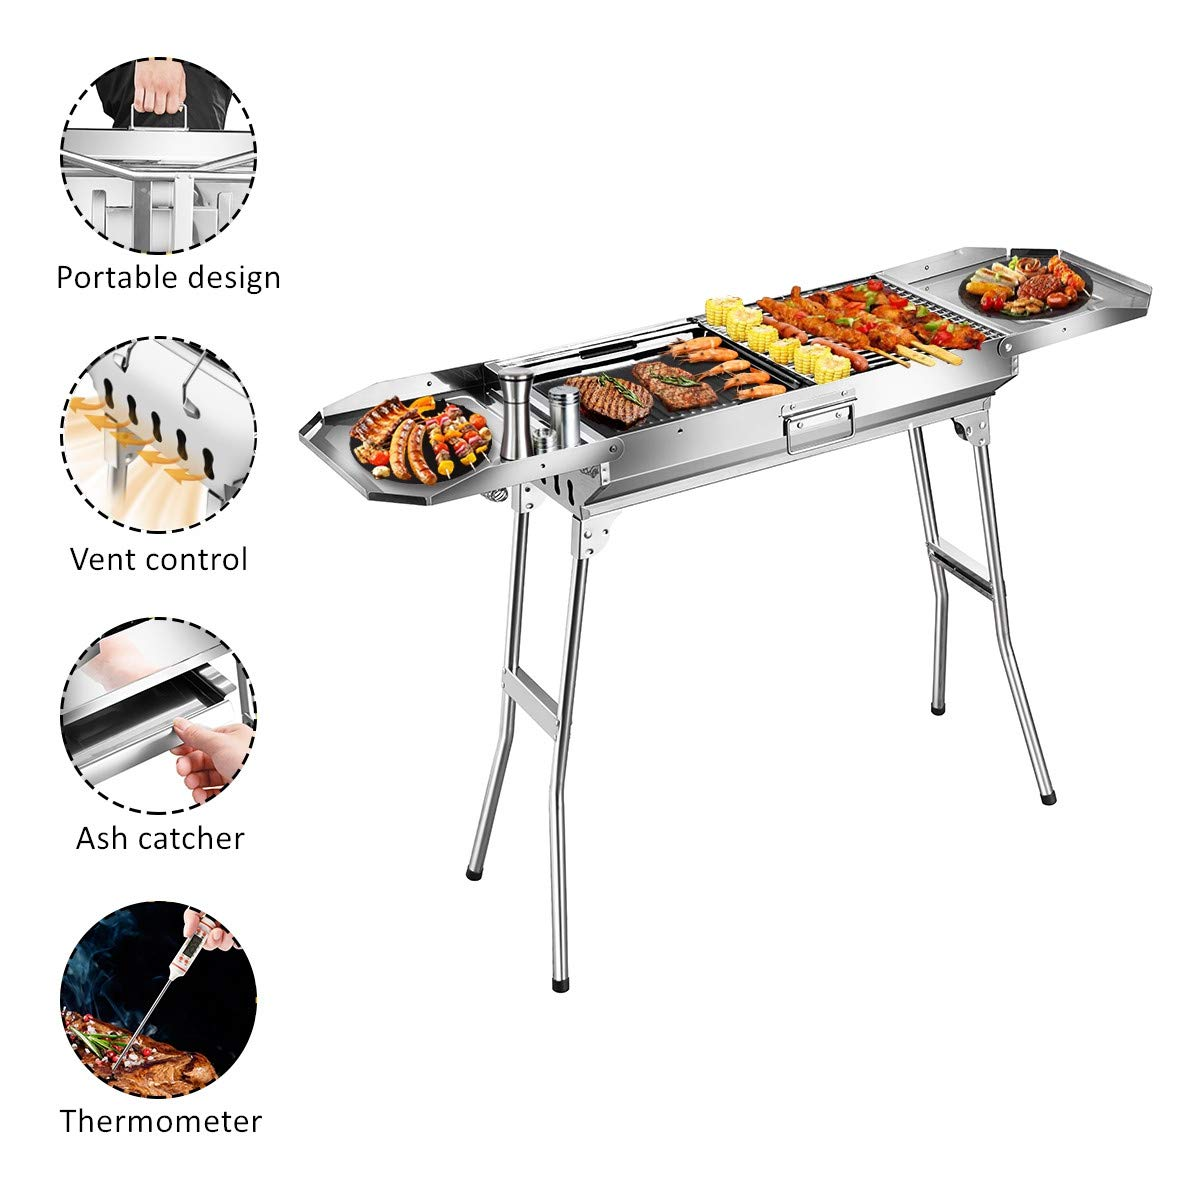 Goozegg 44-Inch Barbecue Charcoal BBQ Grill Heavy-Duty Lightweight Stainless Steel Portable Folding Smoker Grill Set for Outdoor Cooking, Backyards, Patios, Camping, Picnic, Parks